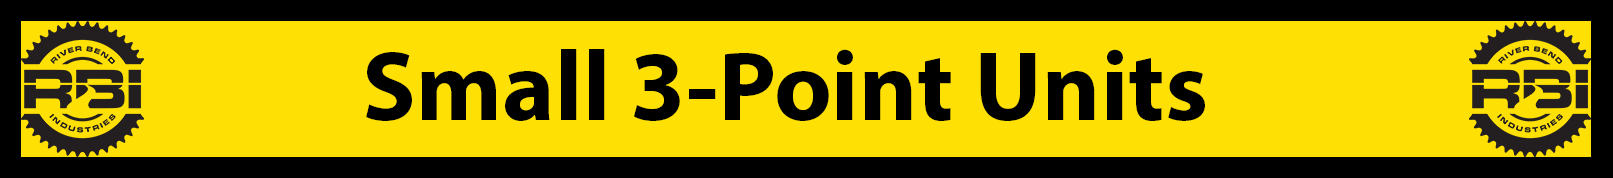 small-3-point-units-icon.png